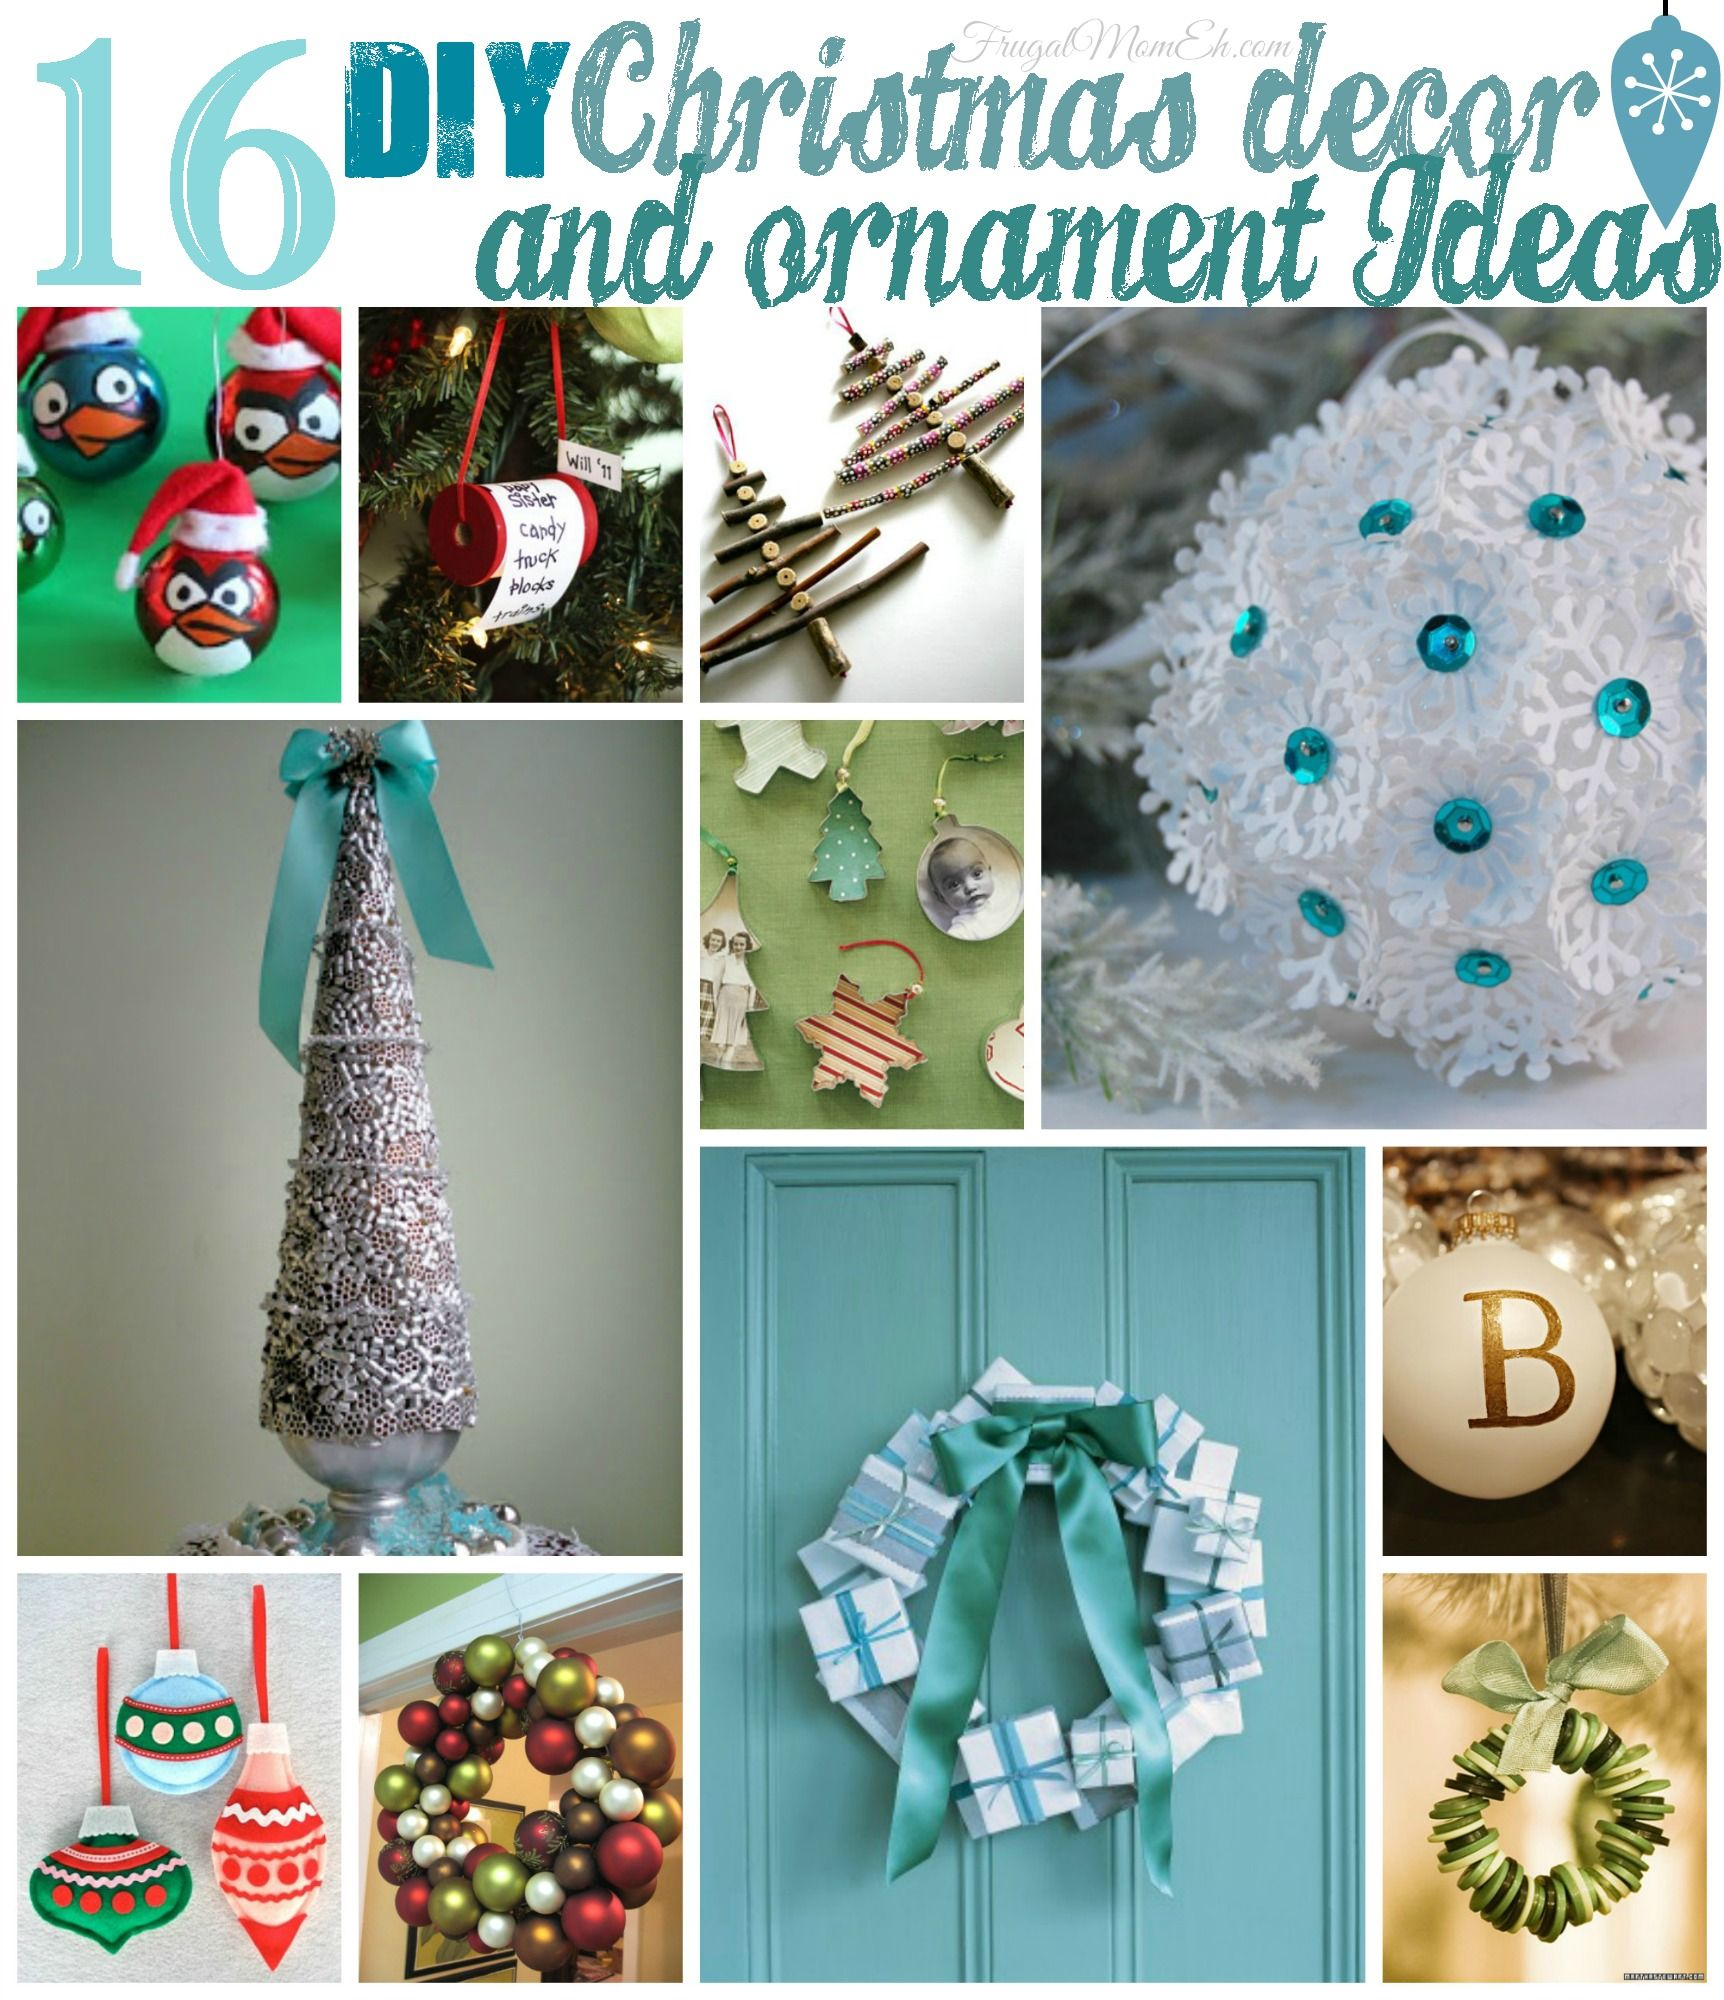 Diy christmas decorations 2014 - Diy Christmas Decorating Ideas 2014 16 Diy Christmas Decor And Ornament Ideas